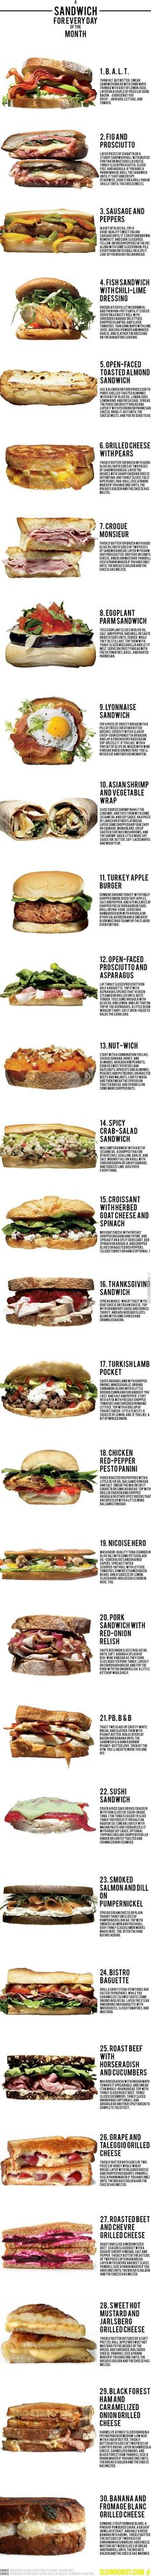 30 Delicious Sandwich Recipes For Every Day Of The Month